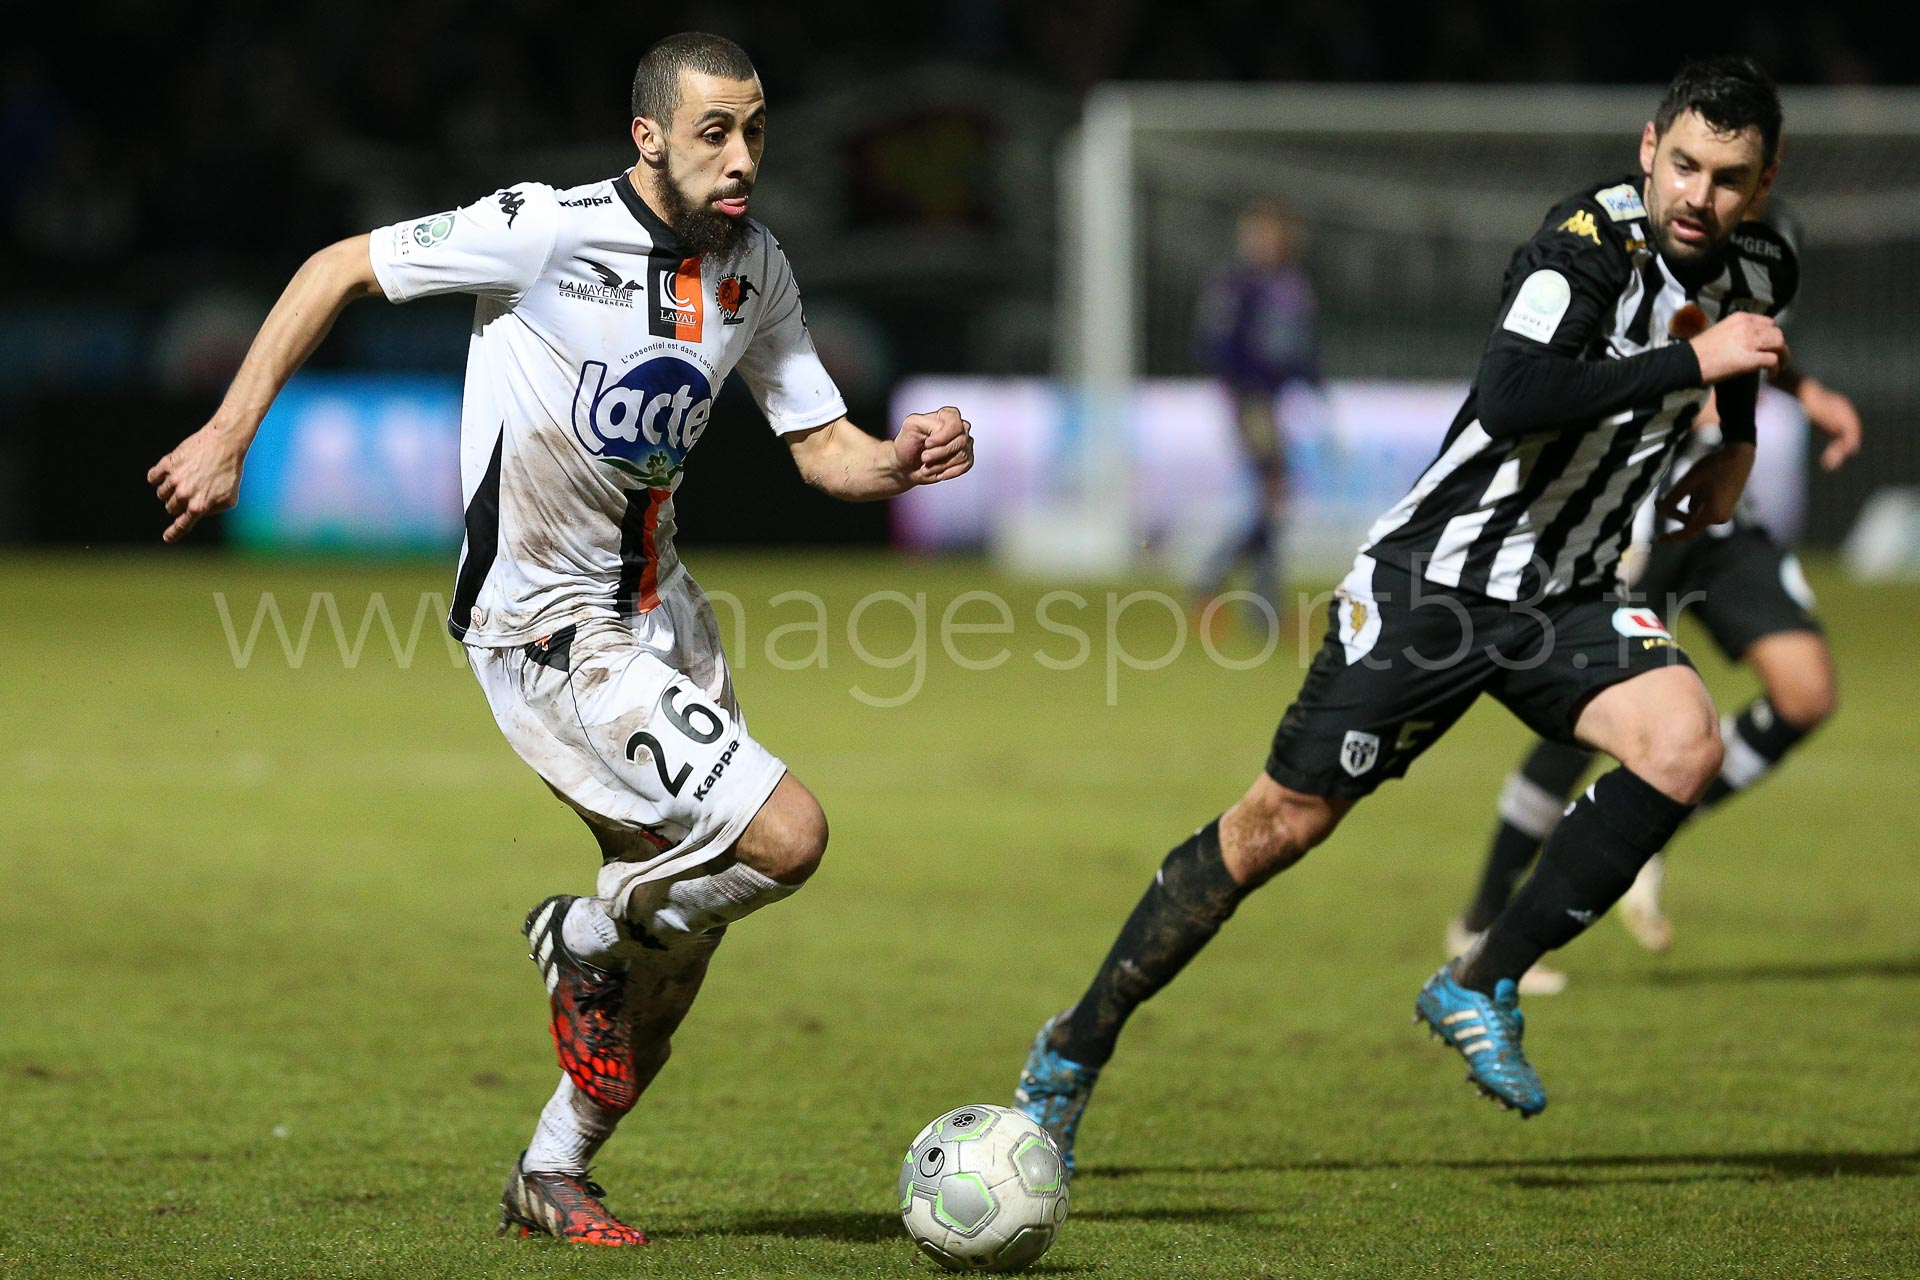 NG-Ligue2-1415-J25-Angers-Laval_29